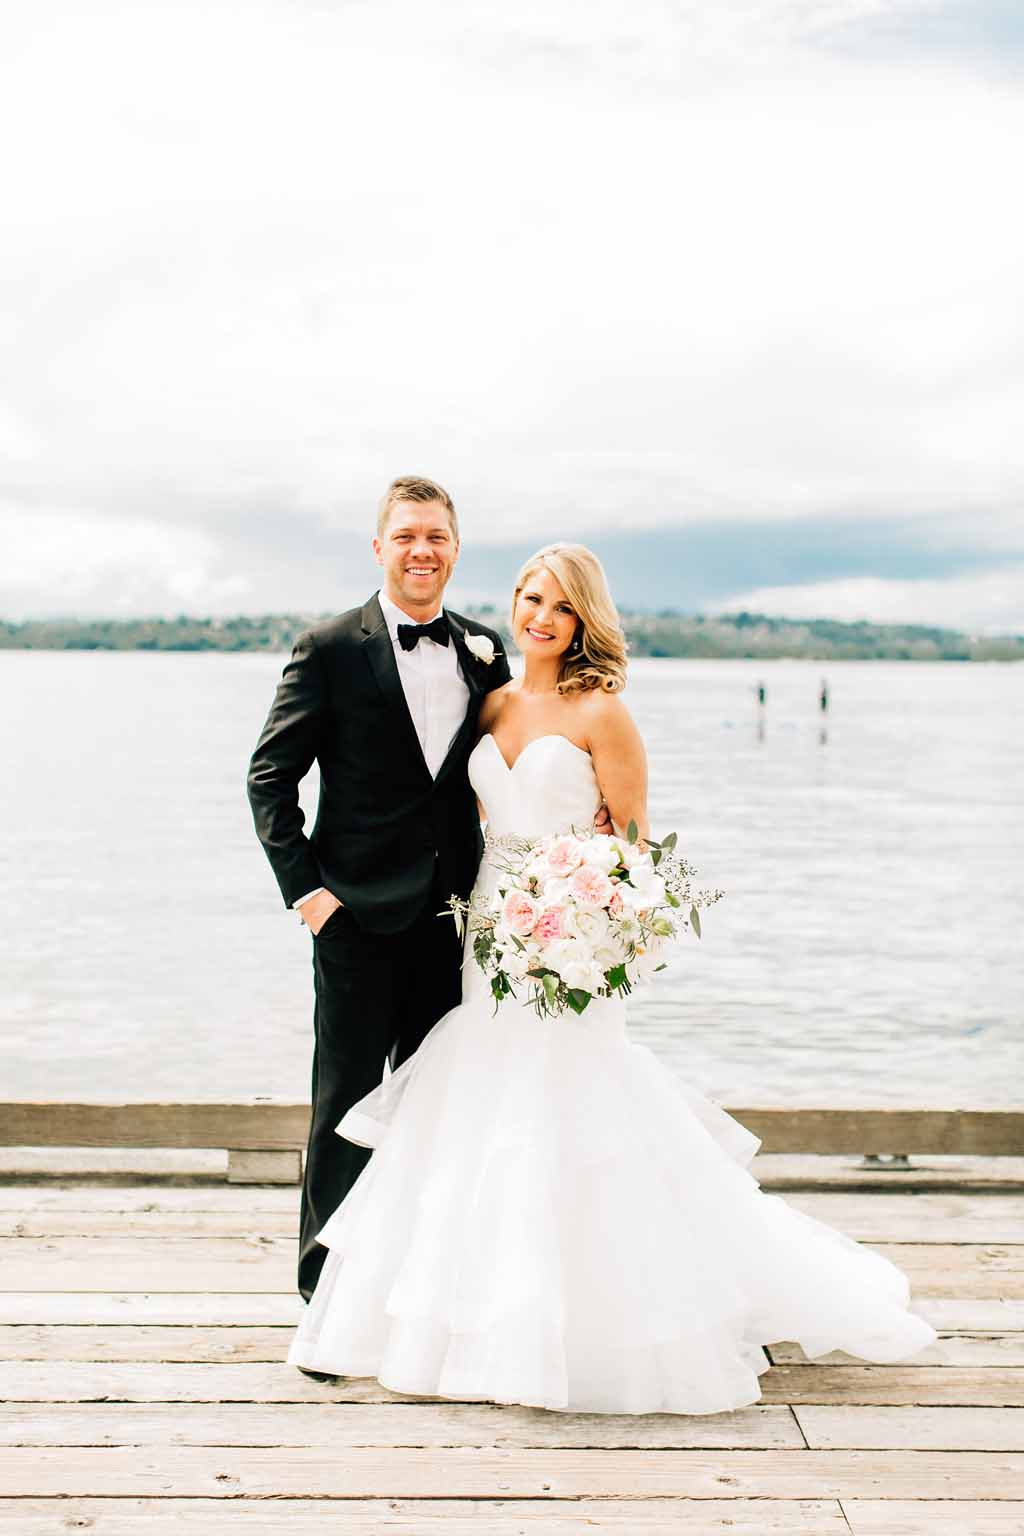 Bride and groom at their Lake Washington wedding